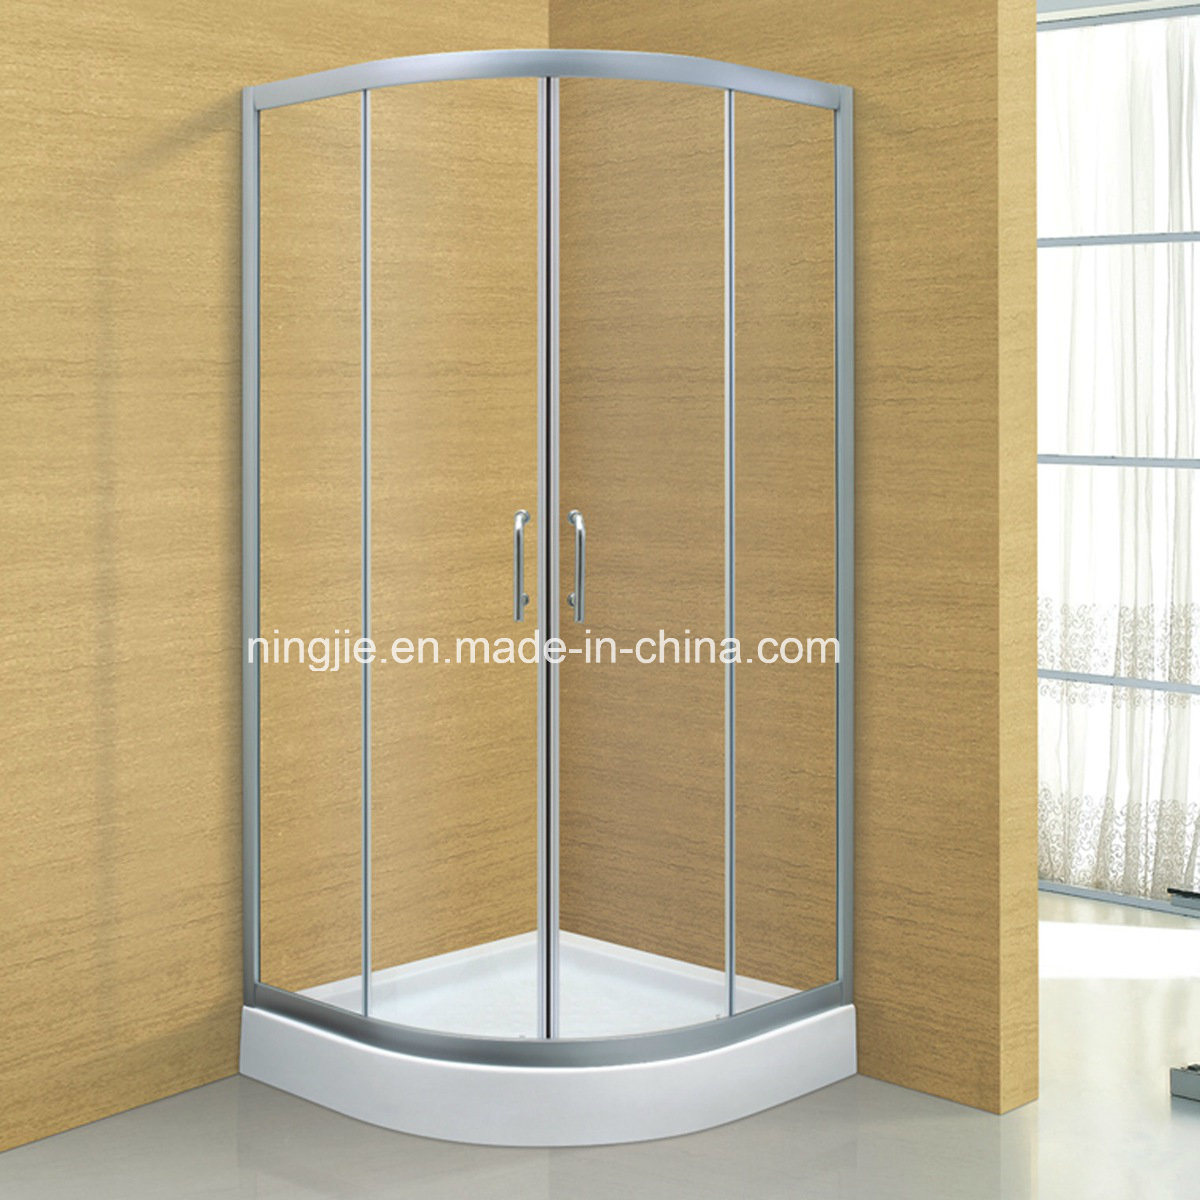 China Acrylic Simple Shower Cabin, Acrylic Simple Shower Cabin ...